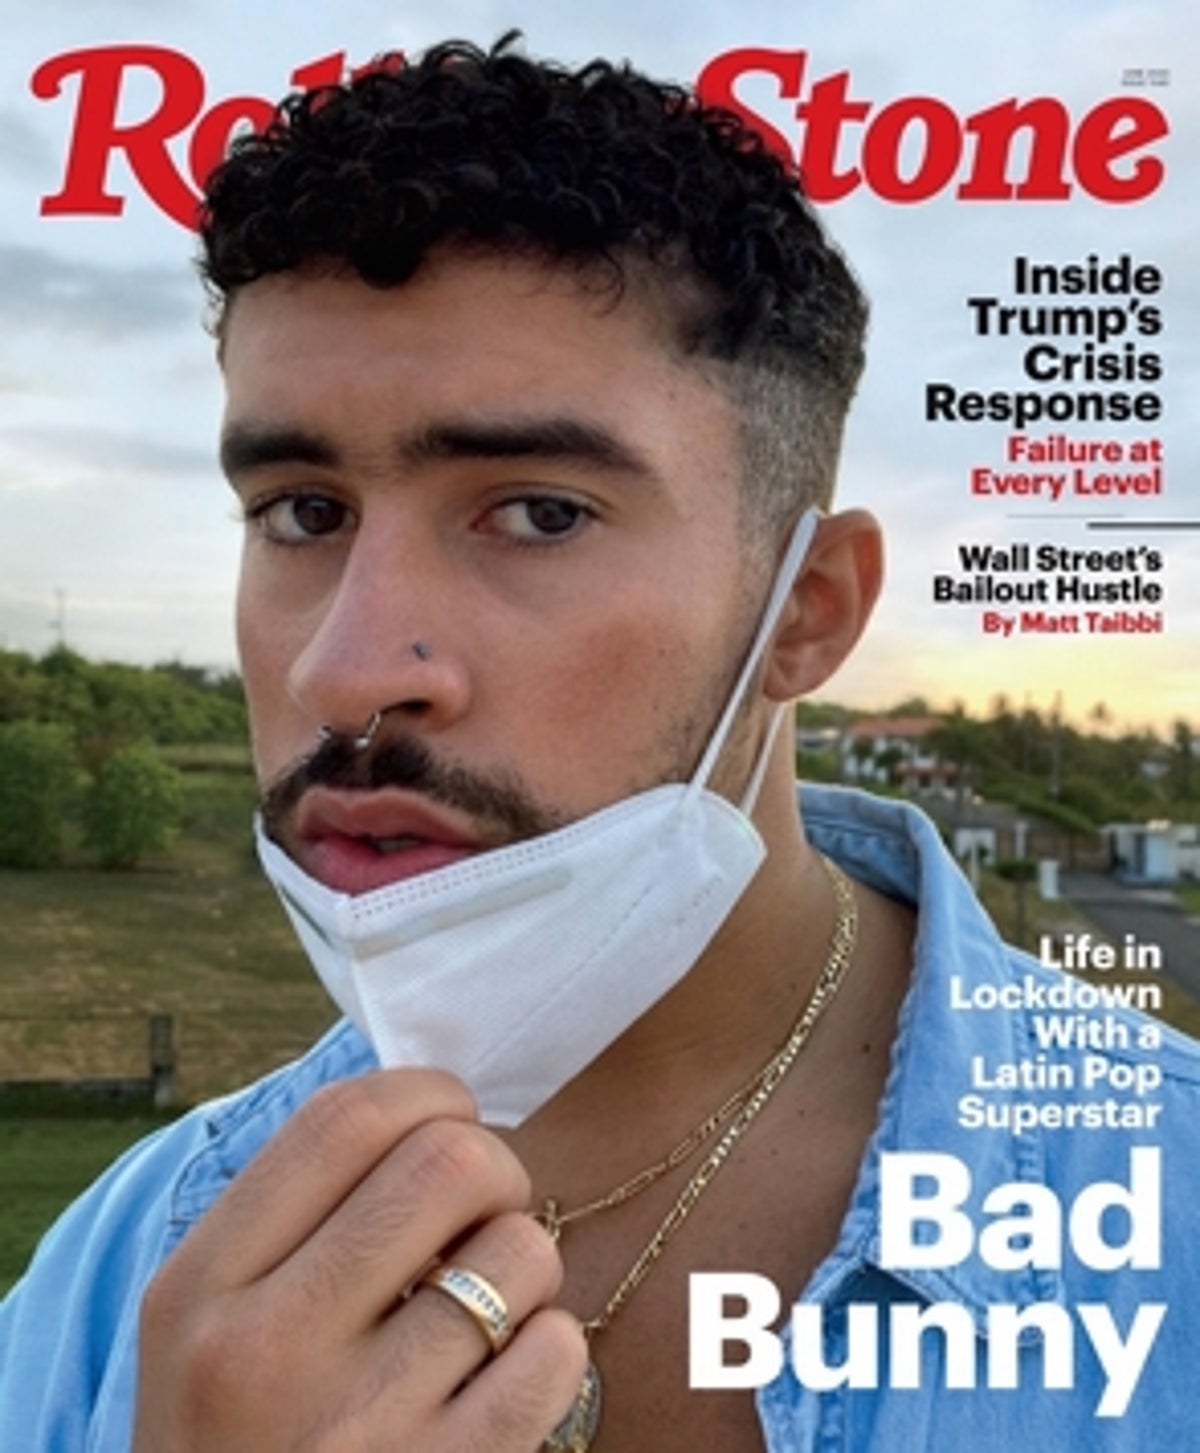 bad bunny rolling stone